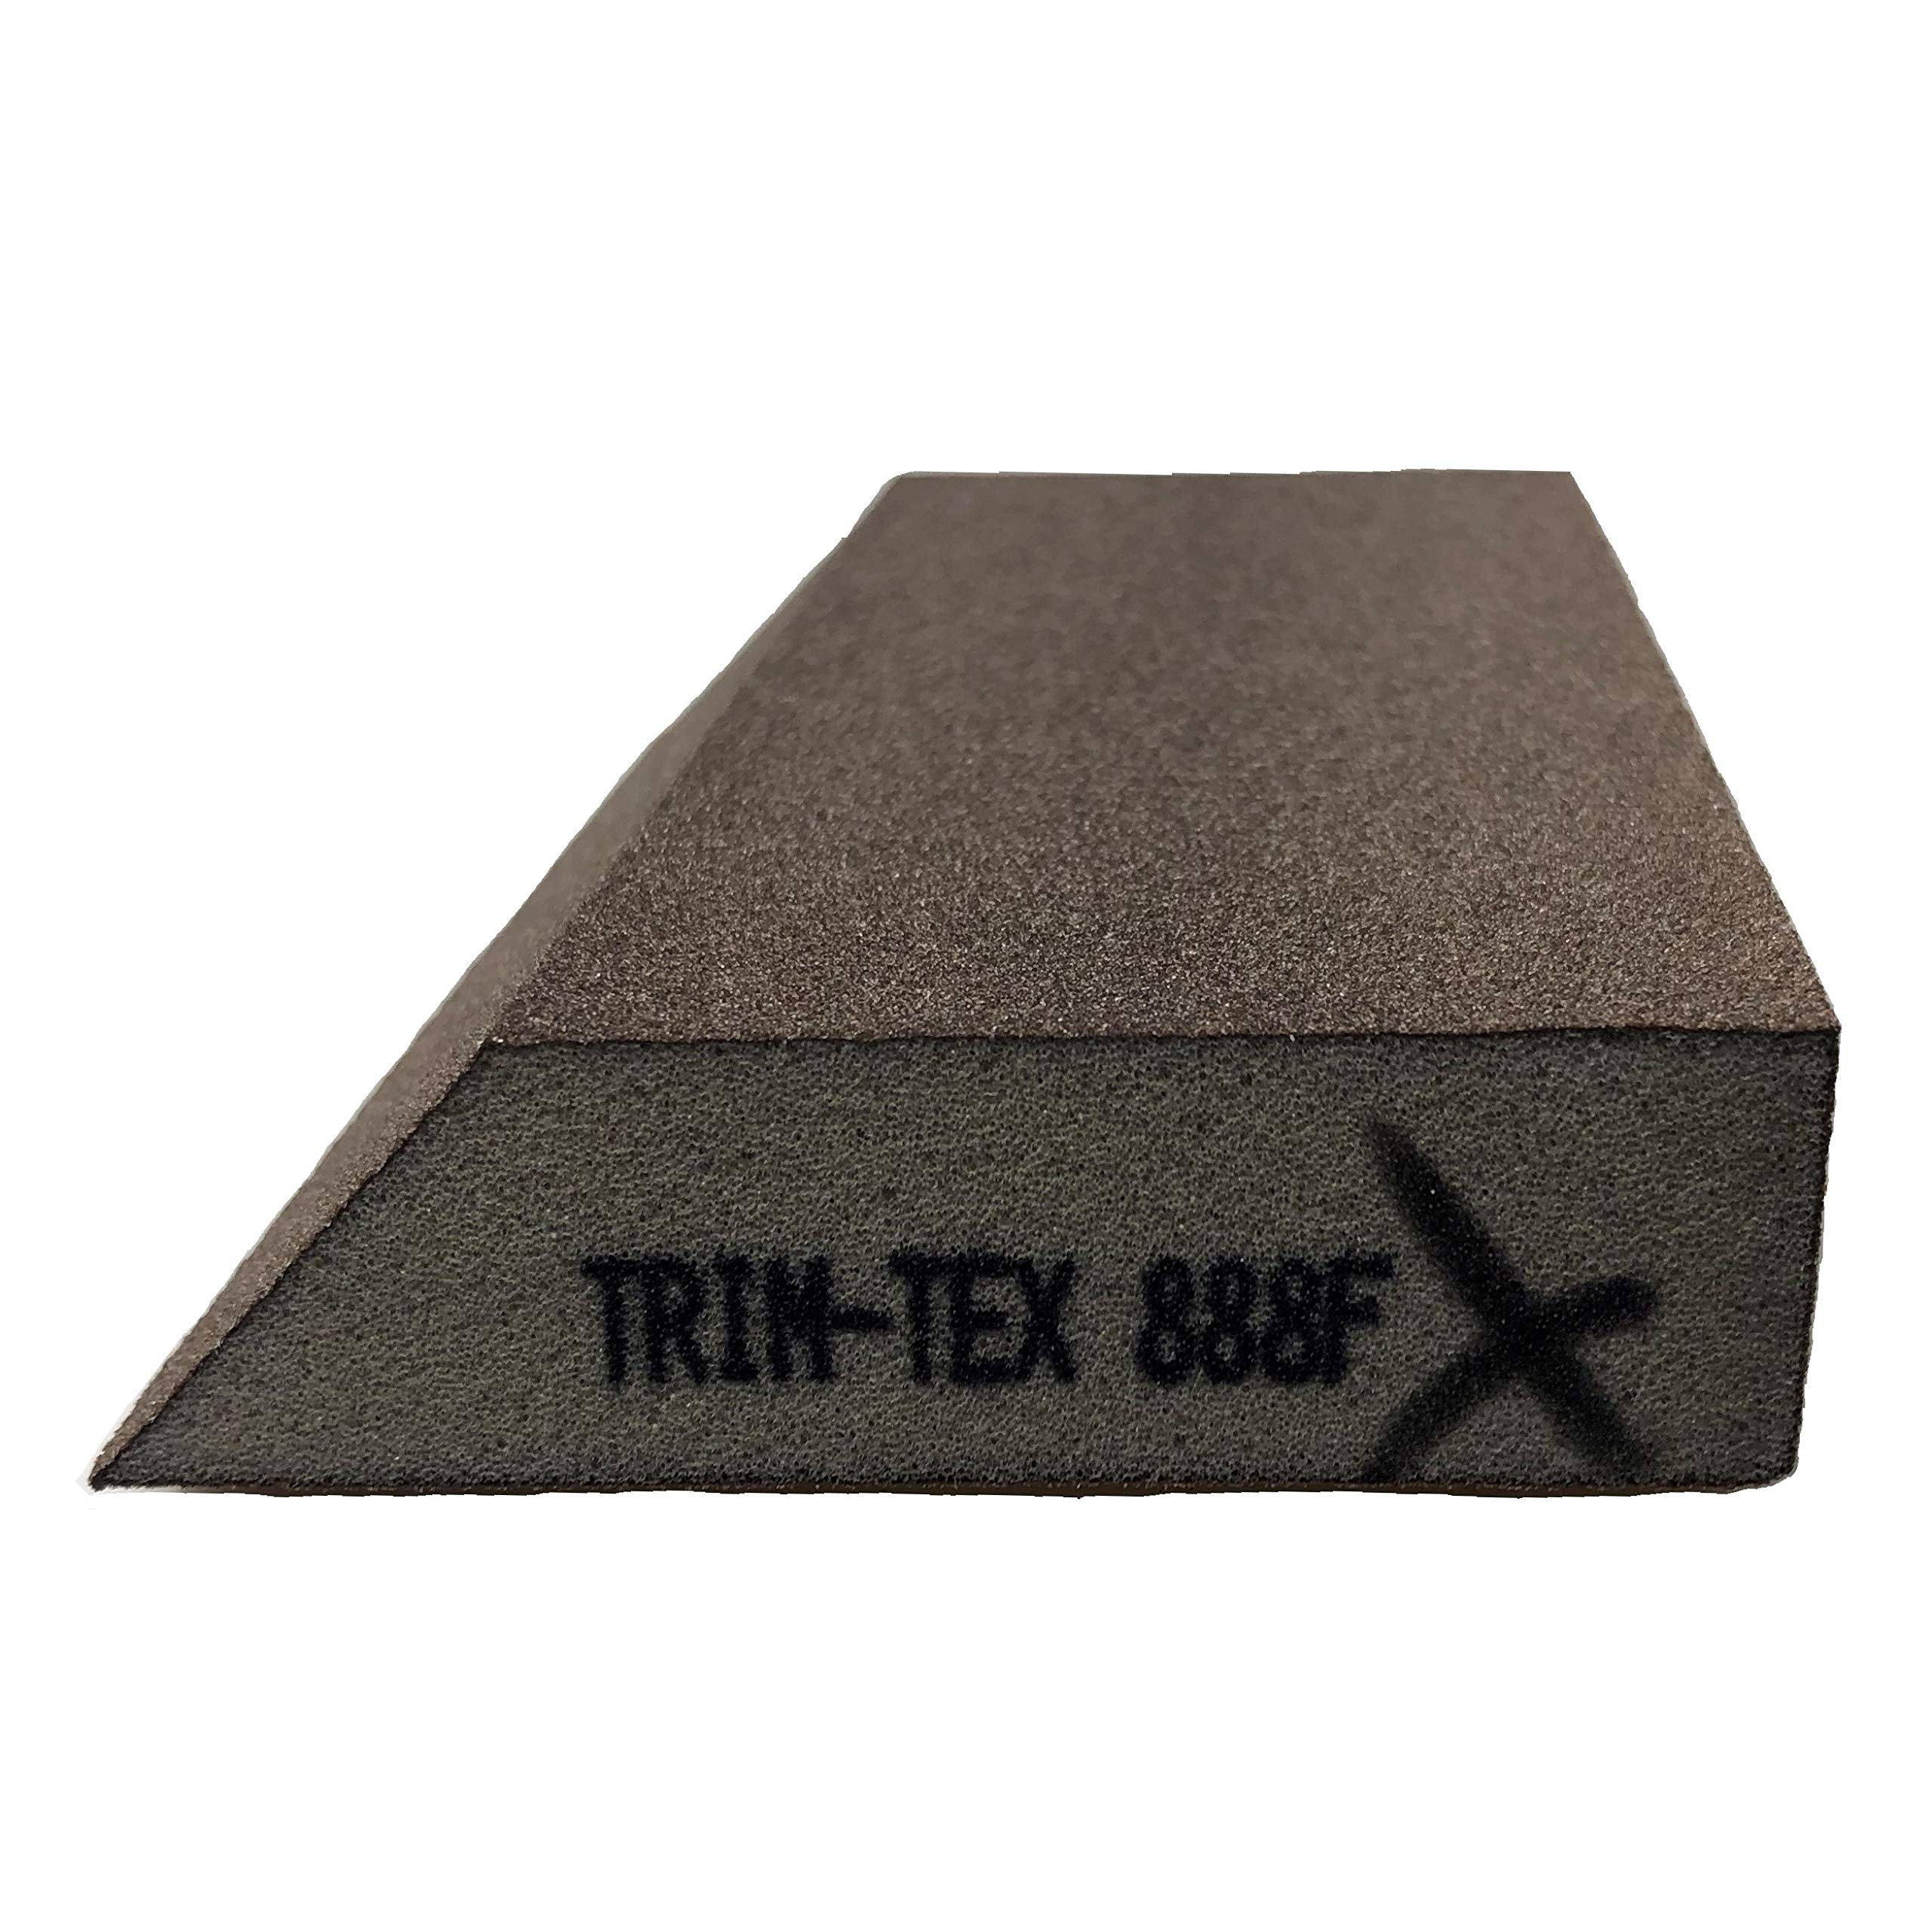 Single Angle Sanding Block Extra Fine Grit (Box of 24) by Trim-Tex